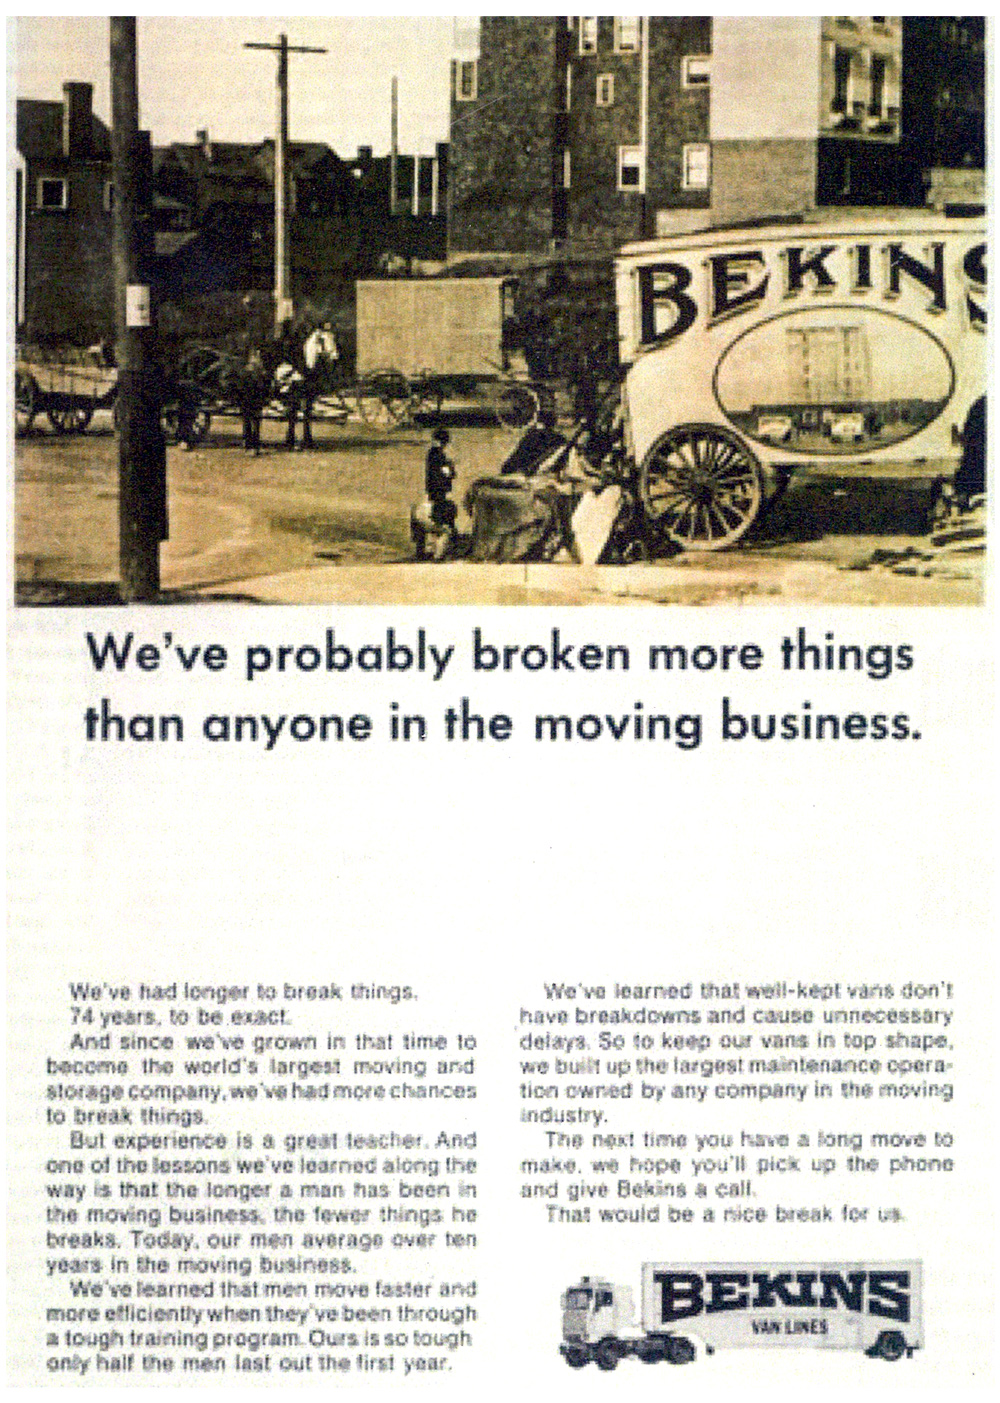 Retro - We've probably broken more things than anyone in the moving business